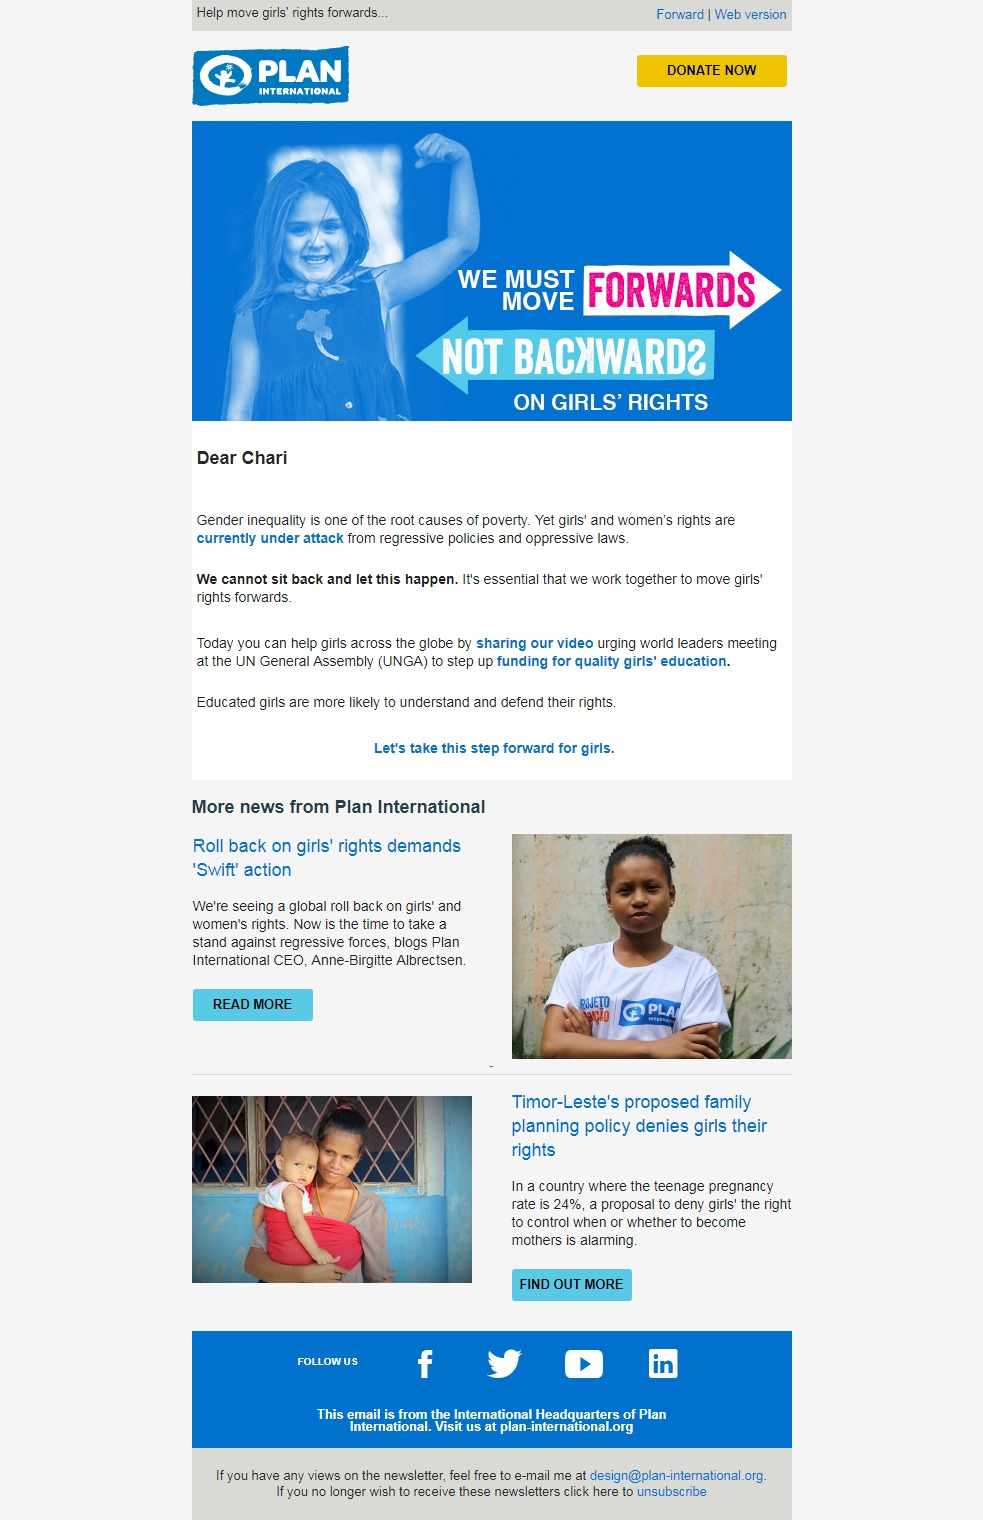 Charity Email - Plan International